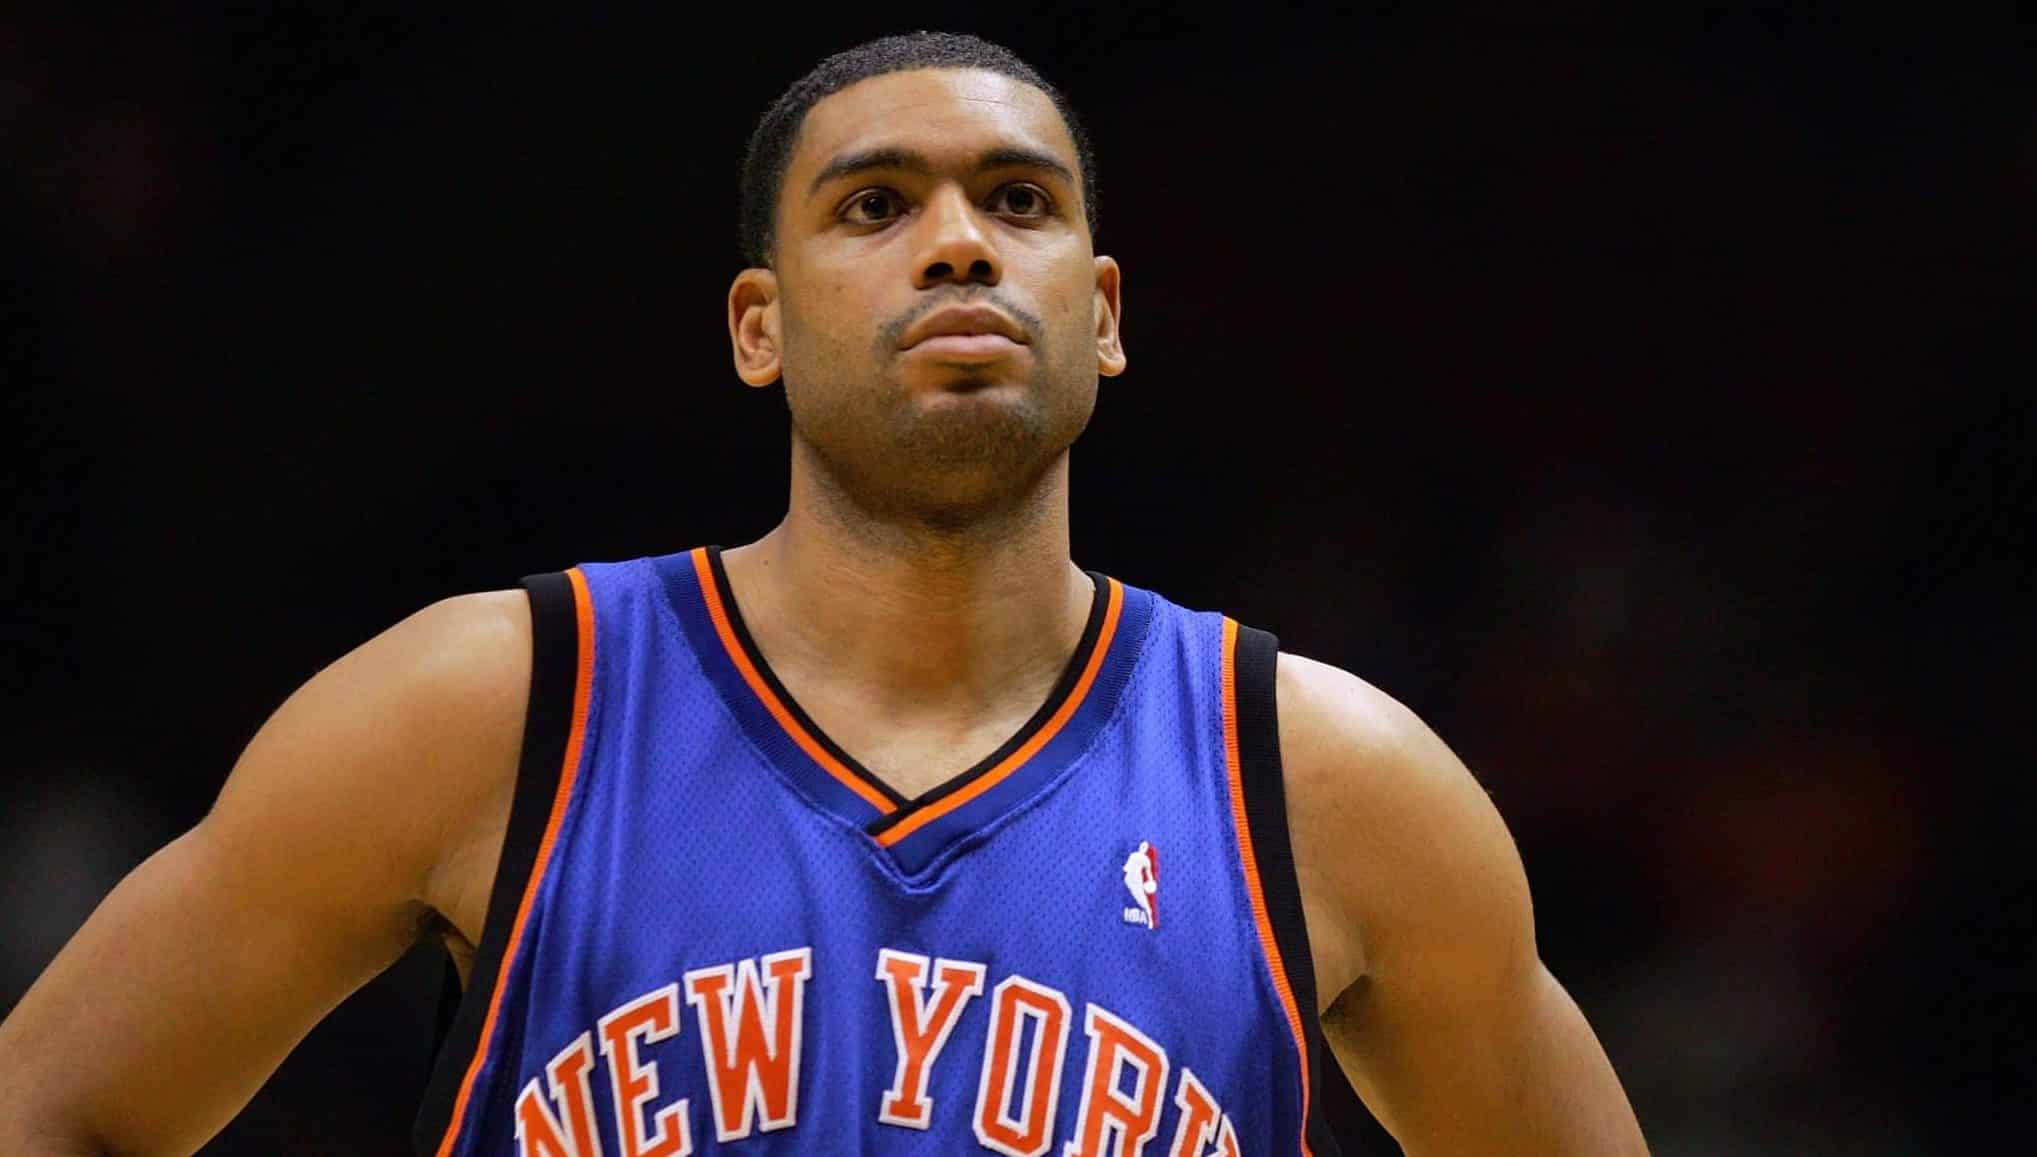 EAST RUTHERFORD, NJ - DECEMBER 14: Allan Houston #20 of the New York Knicks looks on during a game against the New Jersey Nets on December 14, 2004 at Continental Airlines Arena in East Rutherford, New Jersey. The Knicks won 87-79. NOTE TO USER: User expressly acknowledges and agrees that, by downloading and/or using this Photograph, User is consenting to the terms and conditions of the Getty Images License Agreement.